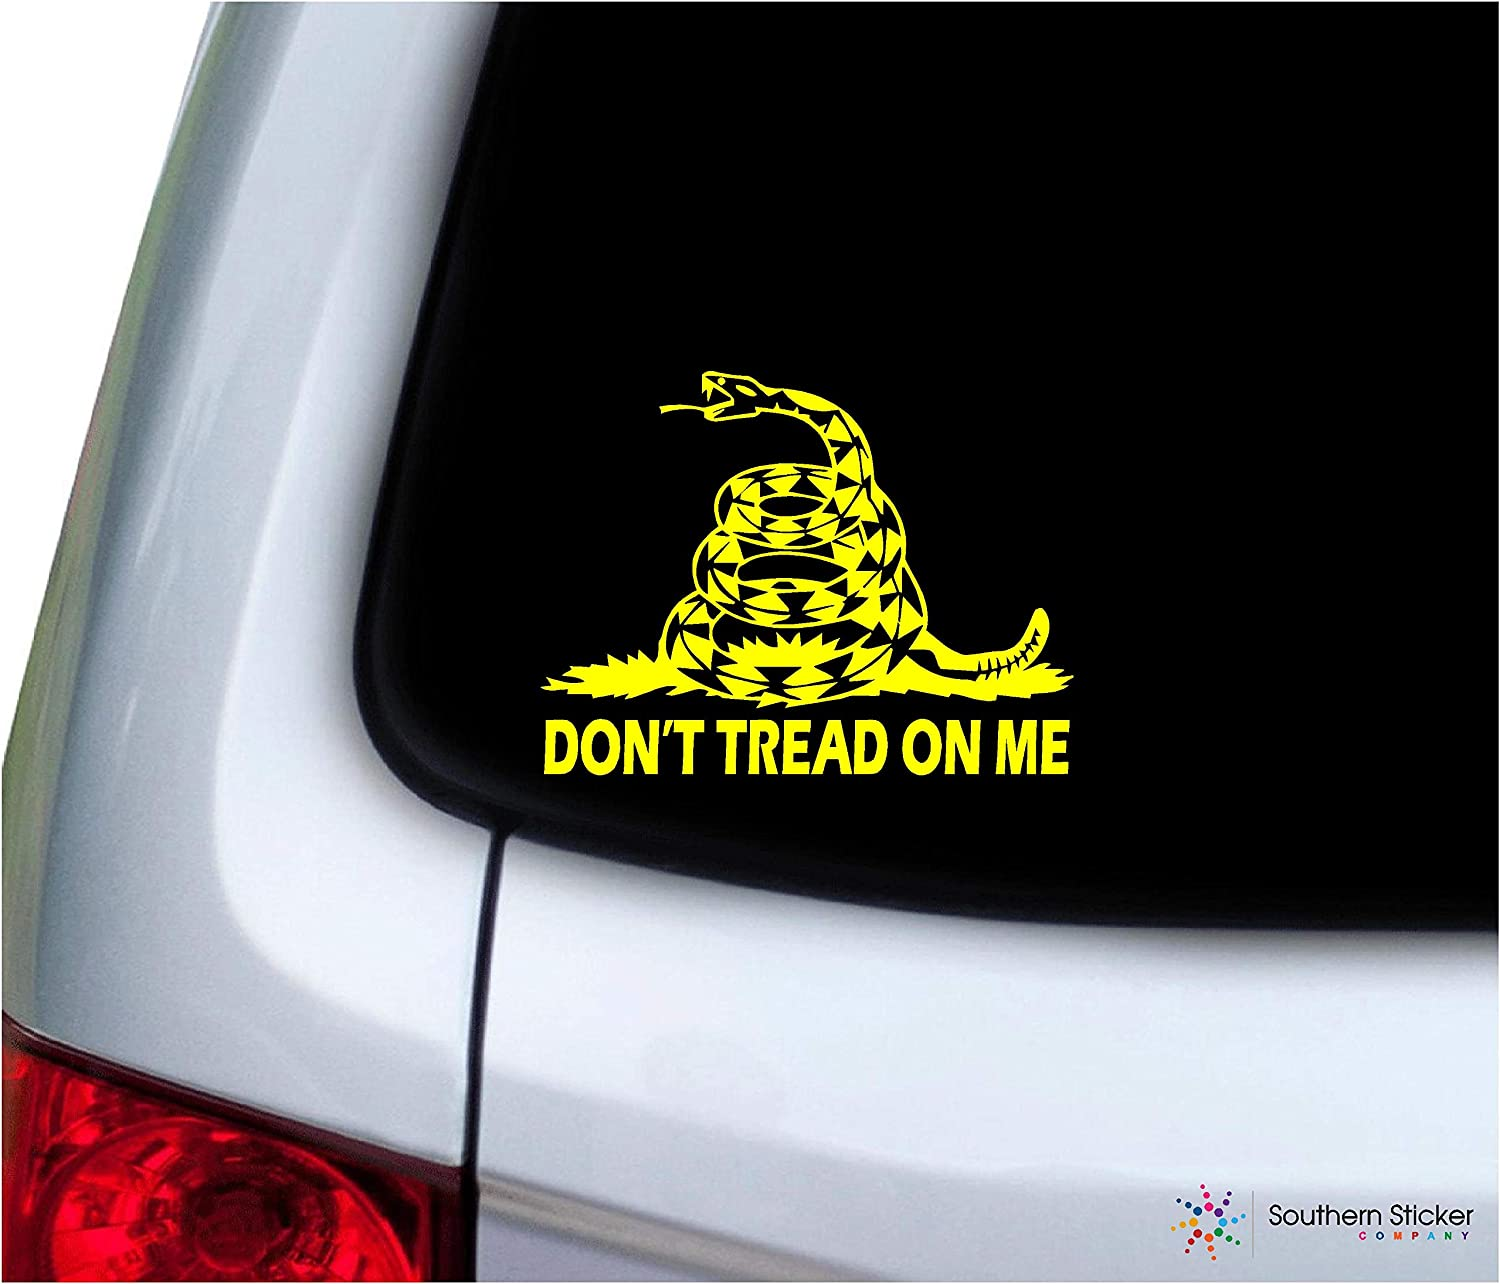 Southern Sticker Company Don't Tread on me Snake with Text 3.9x5.1 inches Size Gadsden Flag Marines Vinyl Laptop car Window Truck - Made and Shipped in USA (Yellow)